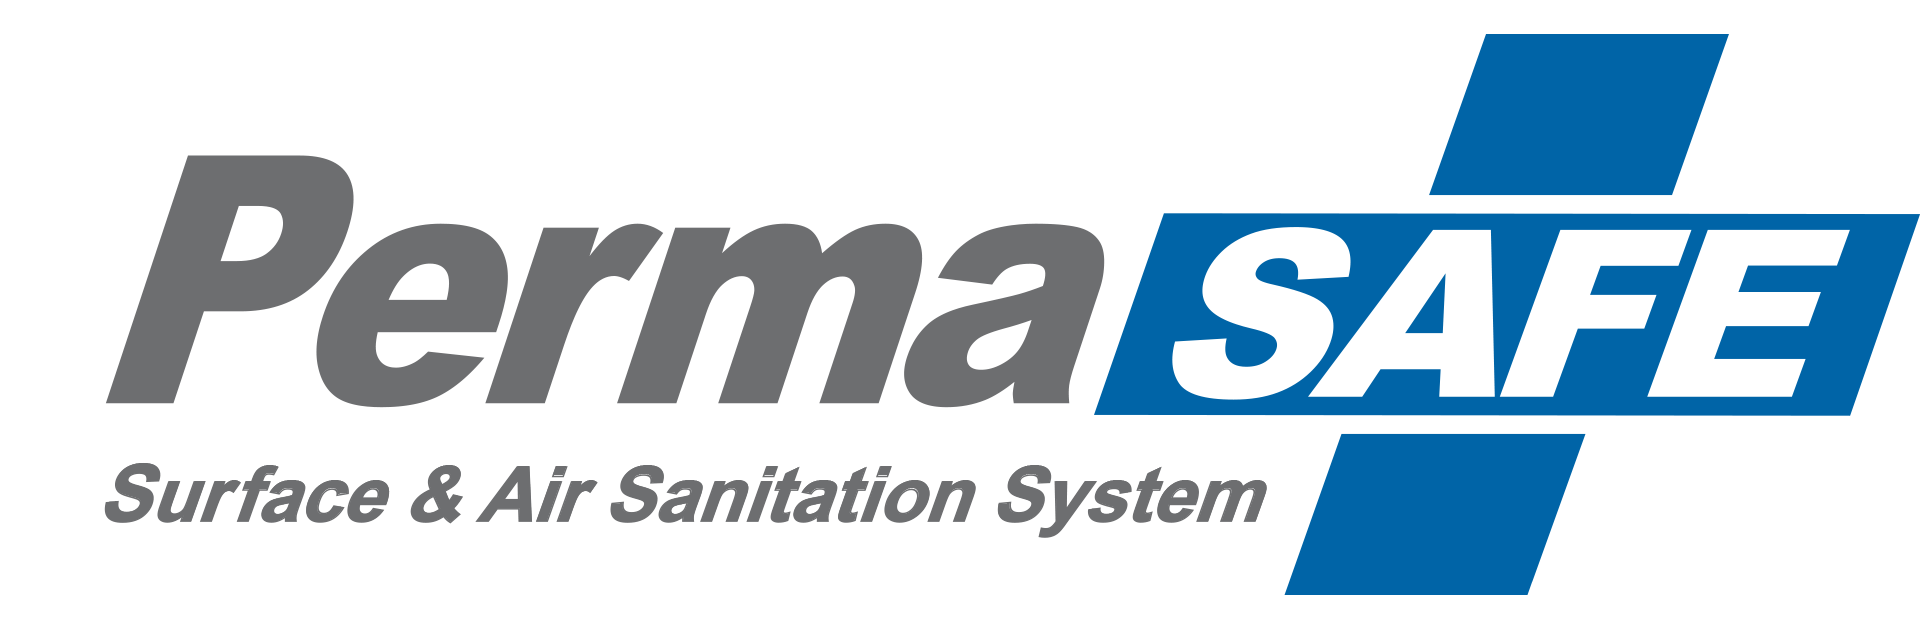 PermaSafe - Surface and Air Sanitation System